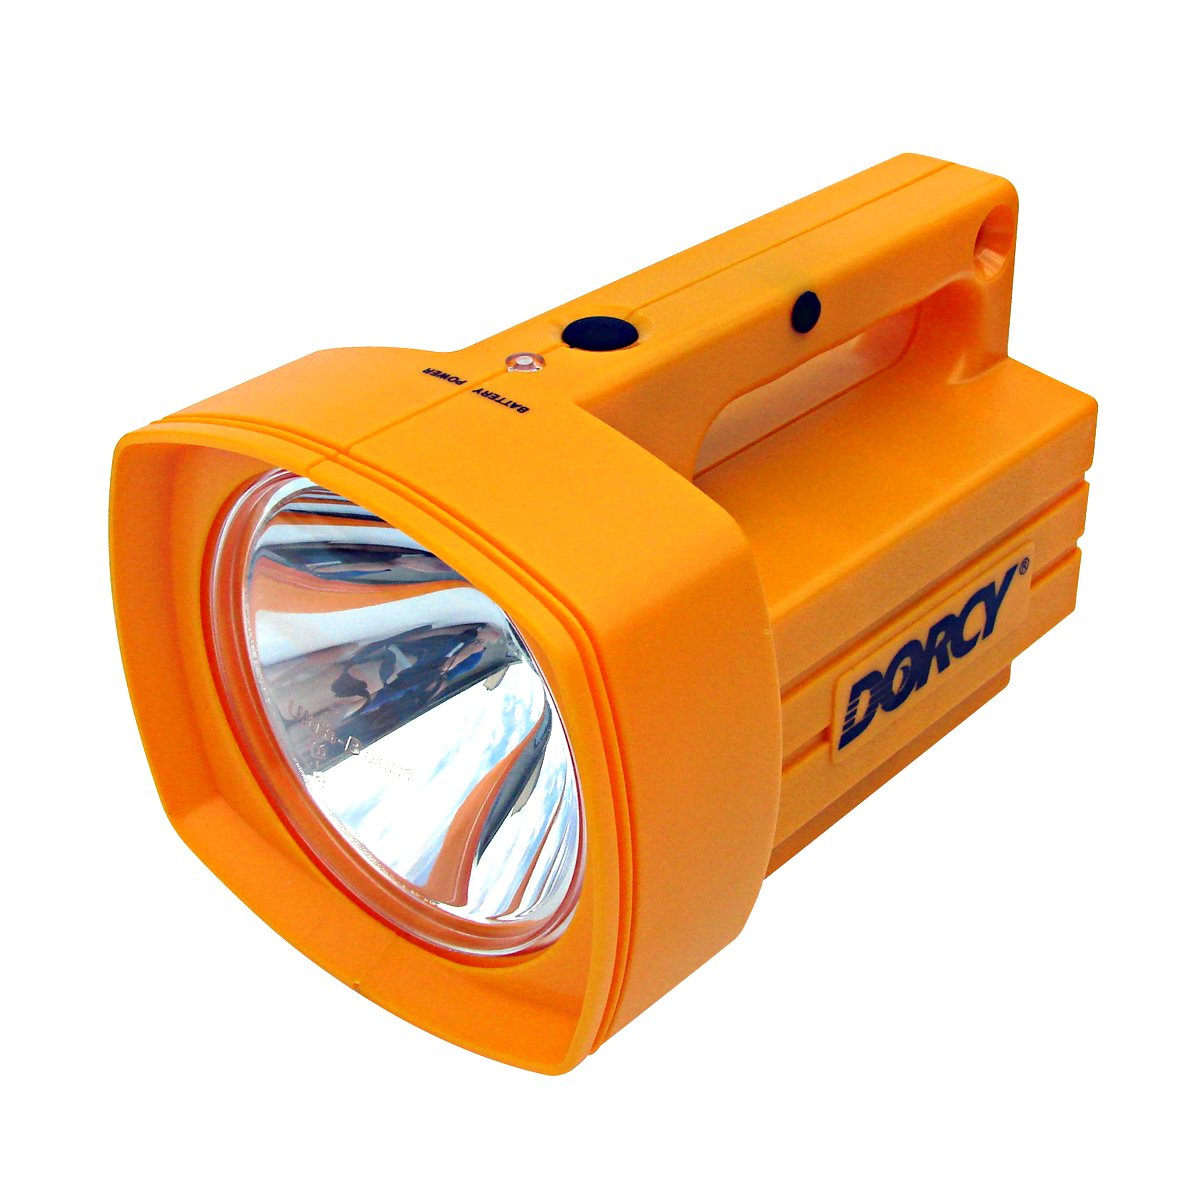 Dorcy 41-1035 Weather Resistant Rechargeable Xenon